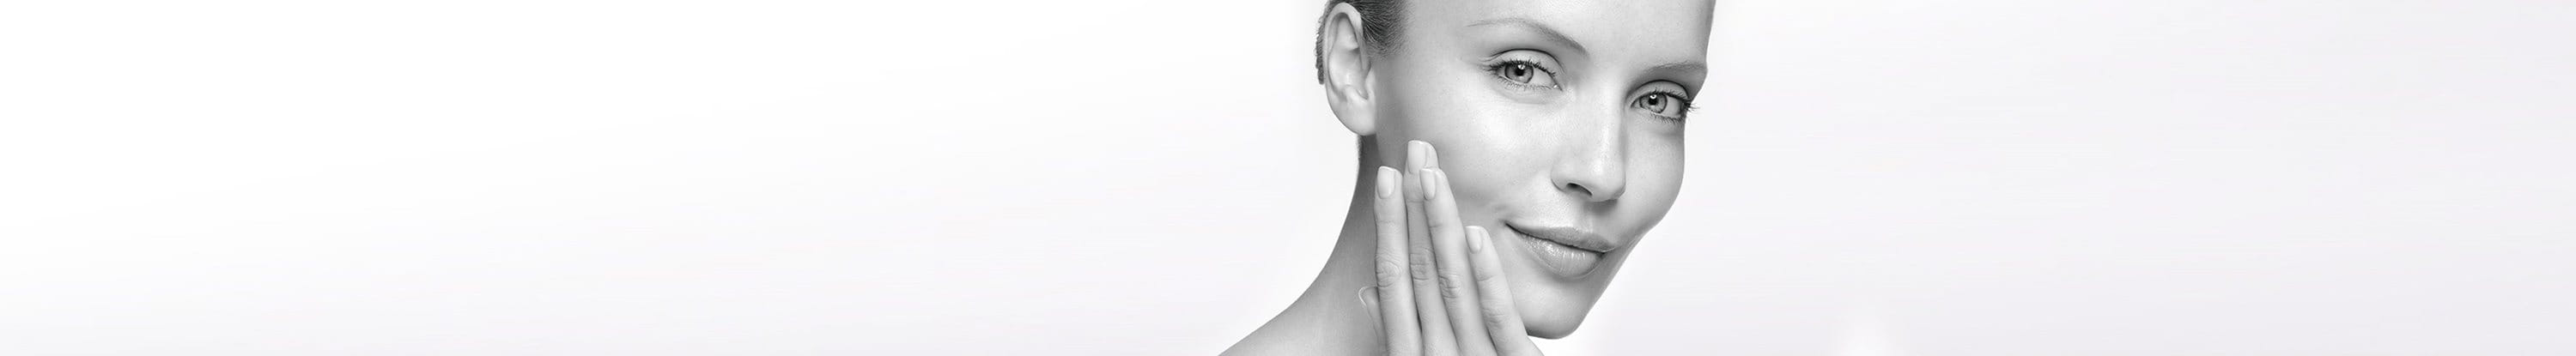 Hypersensitive skin can be prone to redness, couperose and rosacea. It needs gentle care.